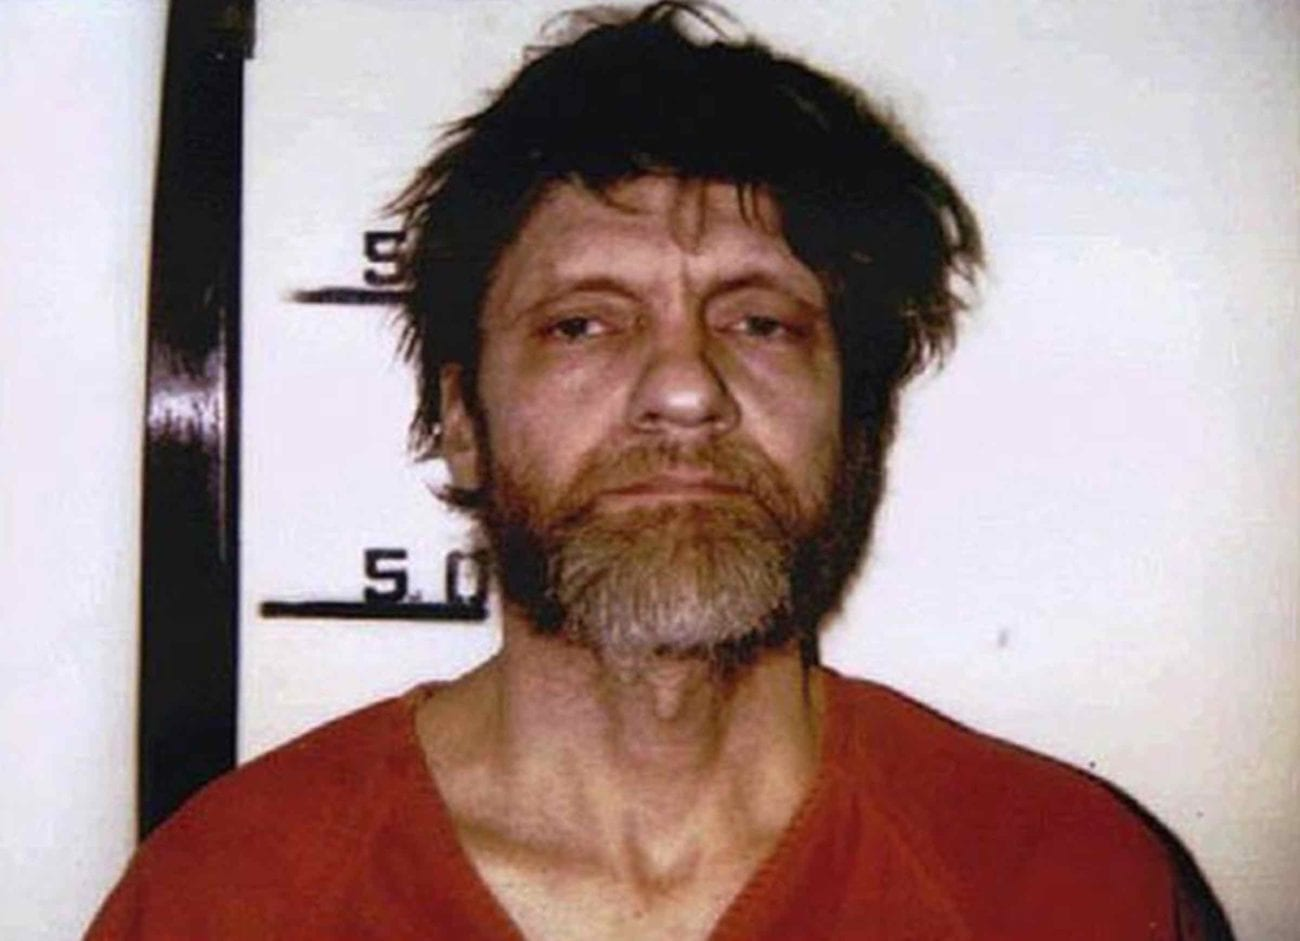 Here's the true story of Ted Kaczynski and his near two decade long reign as one of America's most infamous bombers. Here's what we know.